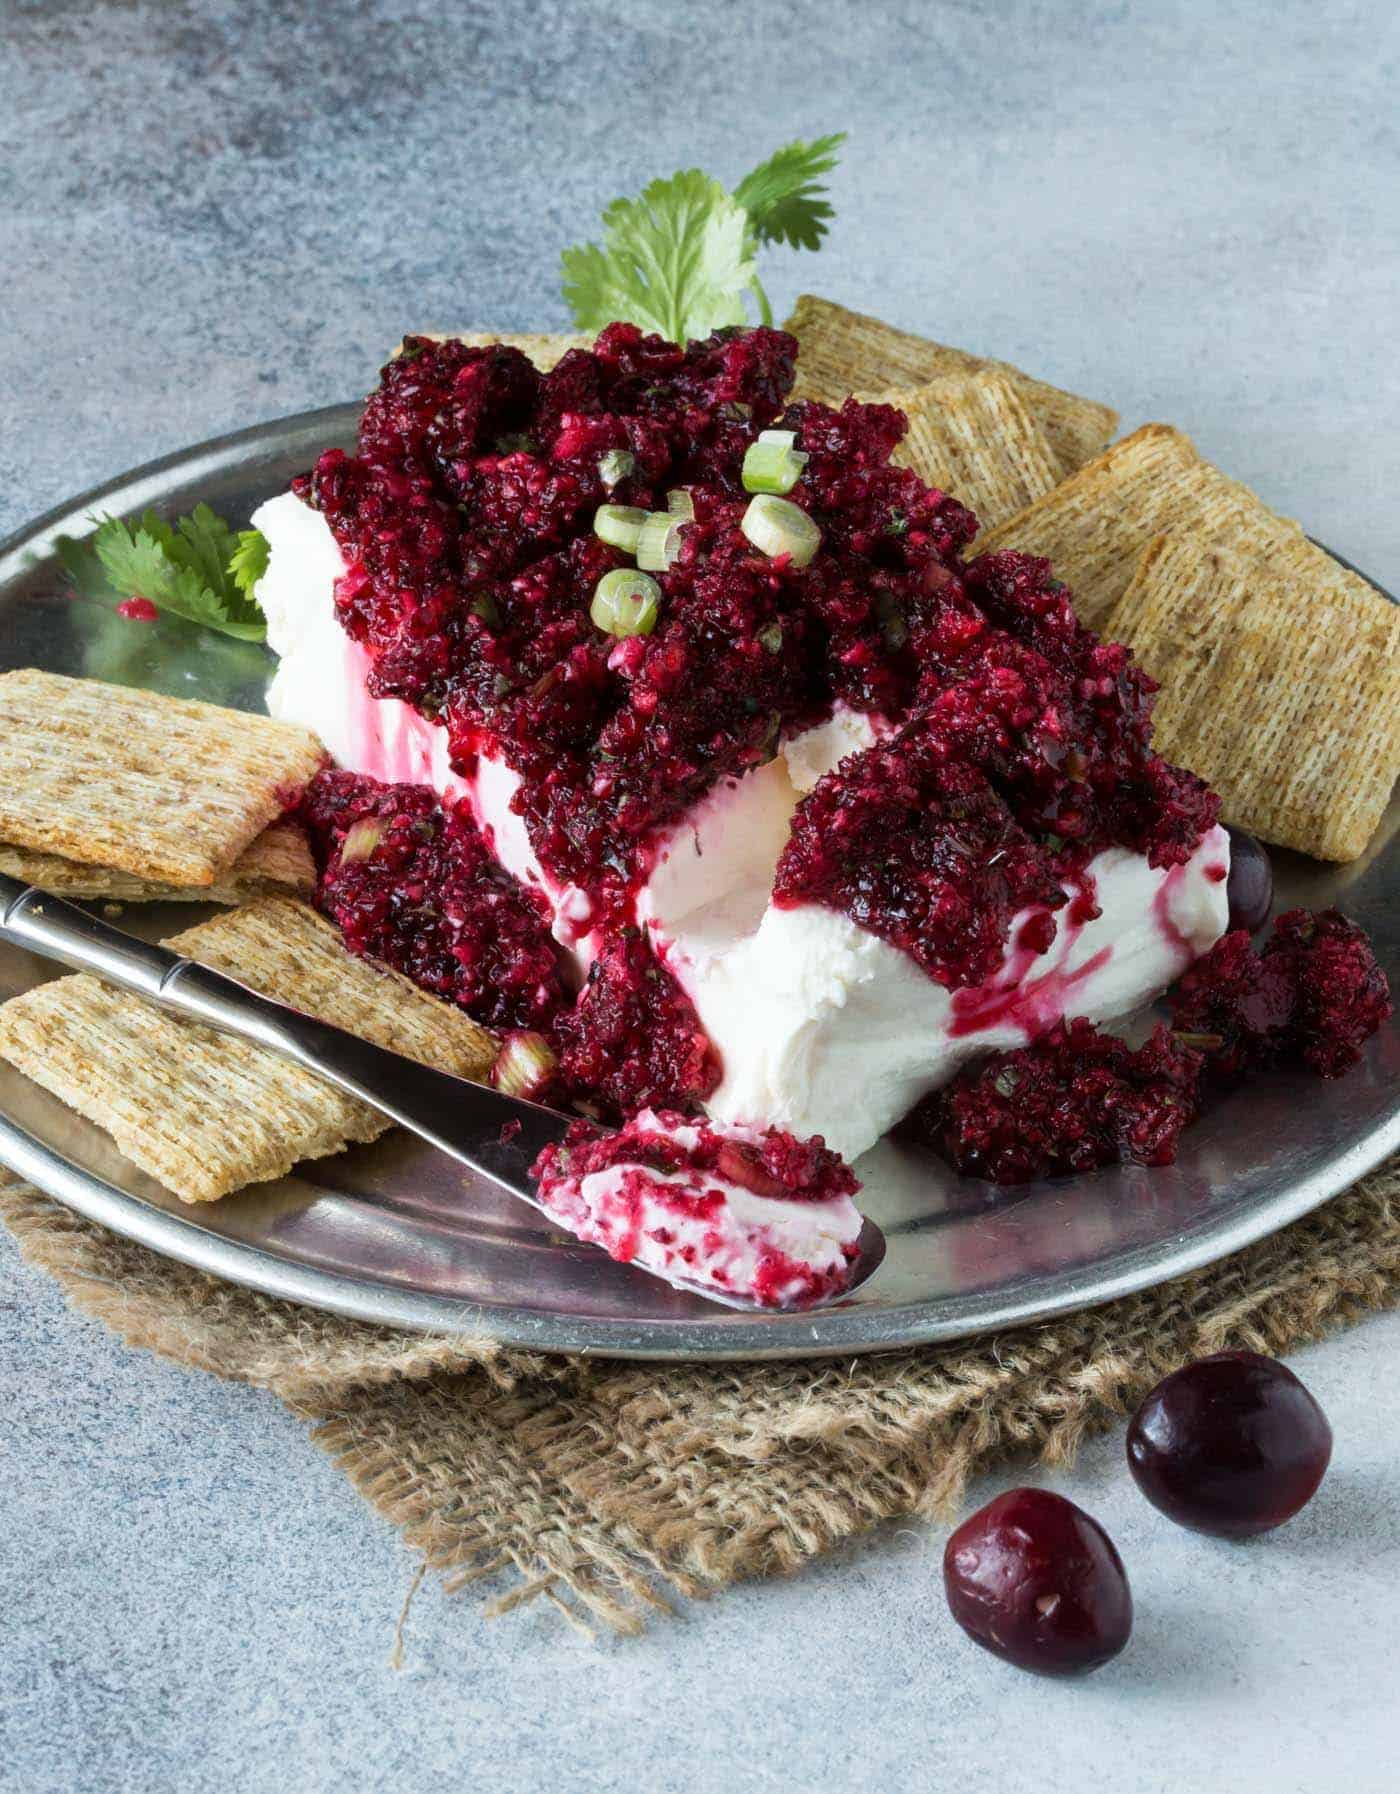 Spicy Cranberry Salsa with Cream Cheese - Easy Block Cream Cheese Appetizer Spreads that make a tasty last-minute appetizer with just a few ingredients.